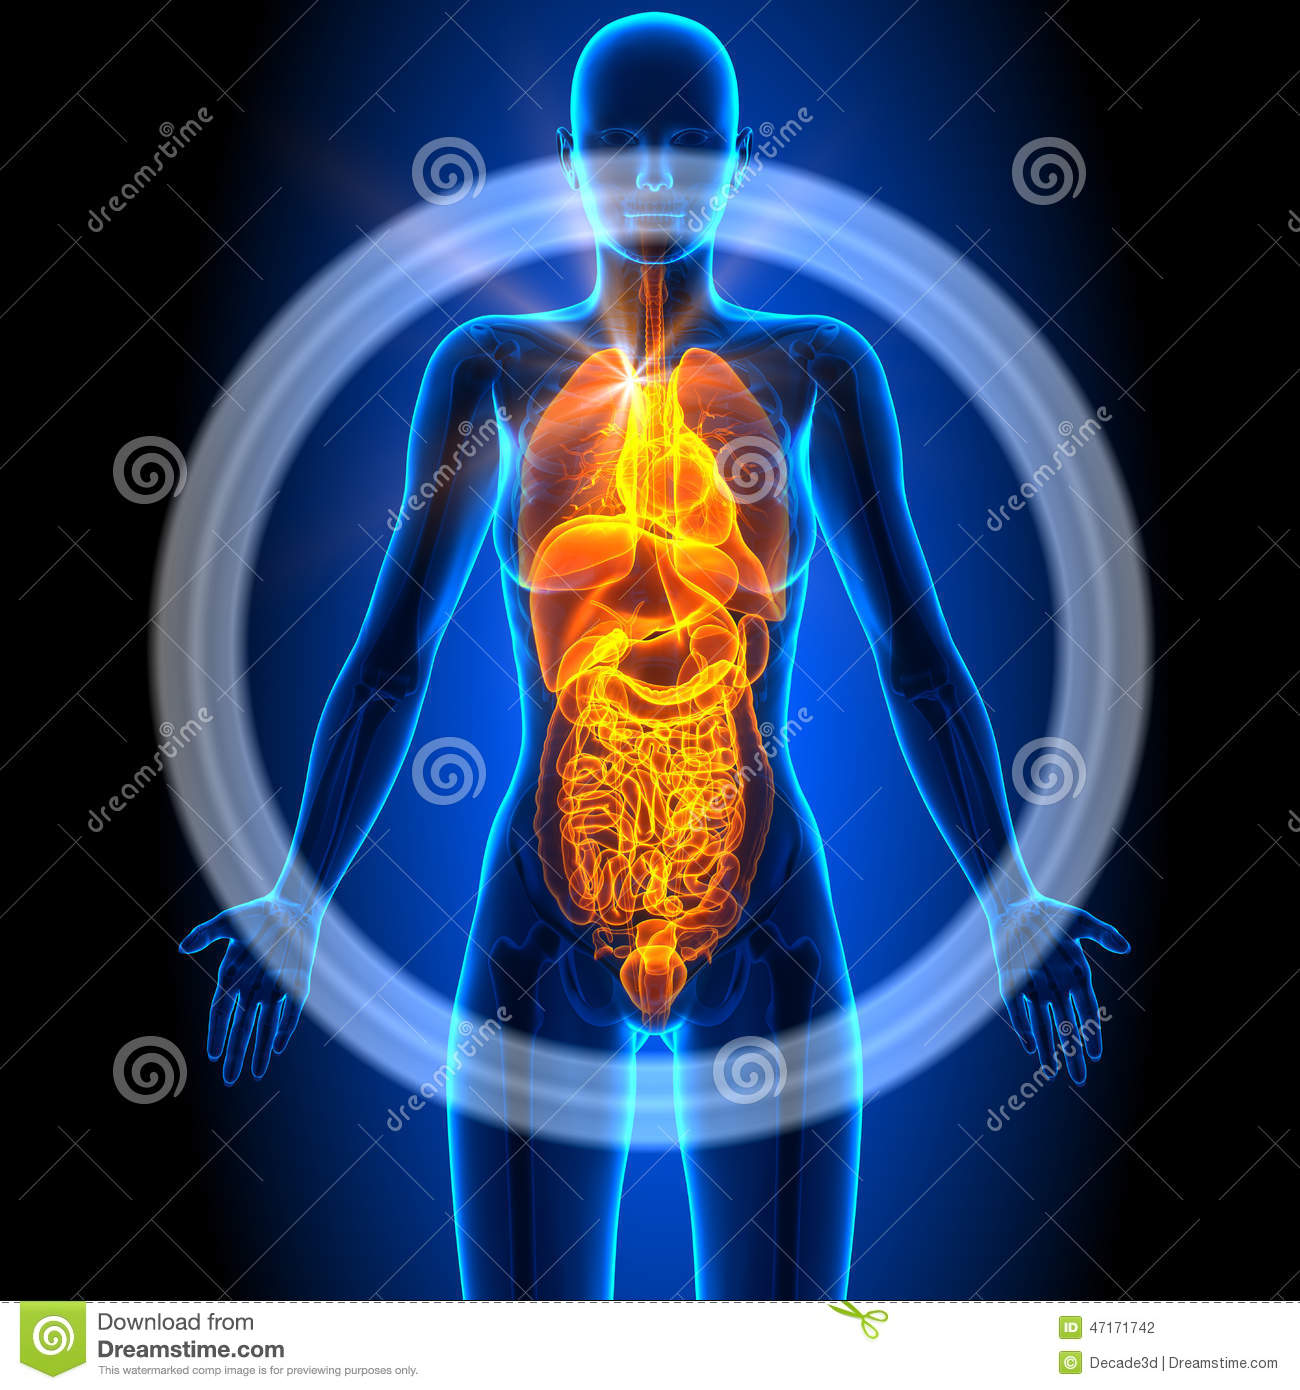 All Female Organs Human Anatomy Stock Illustration